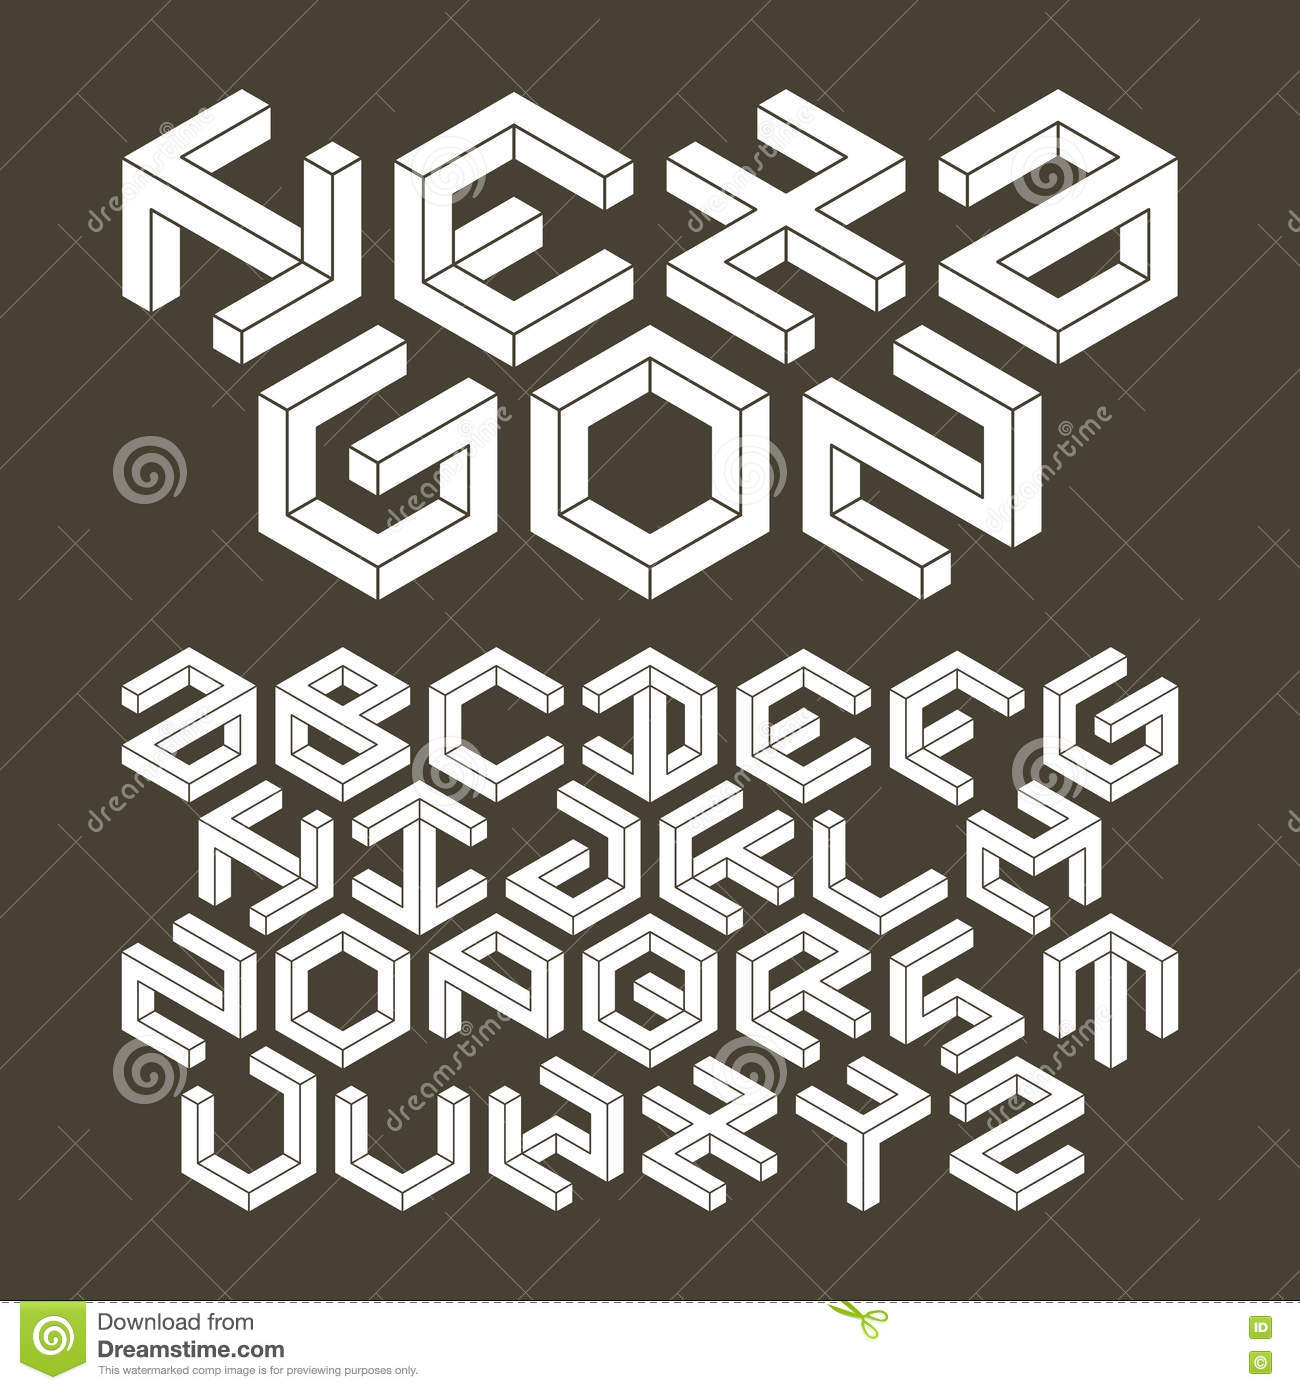 Hexagon alphabet made of impossible shapes